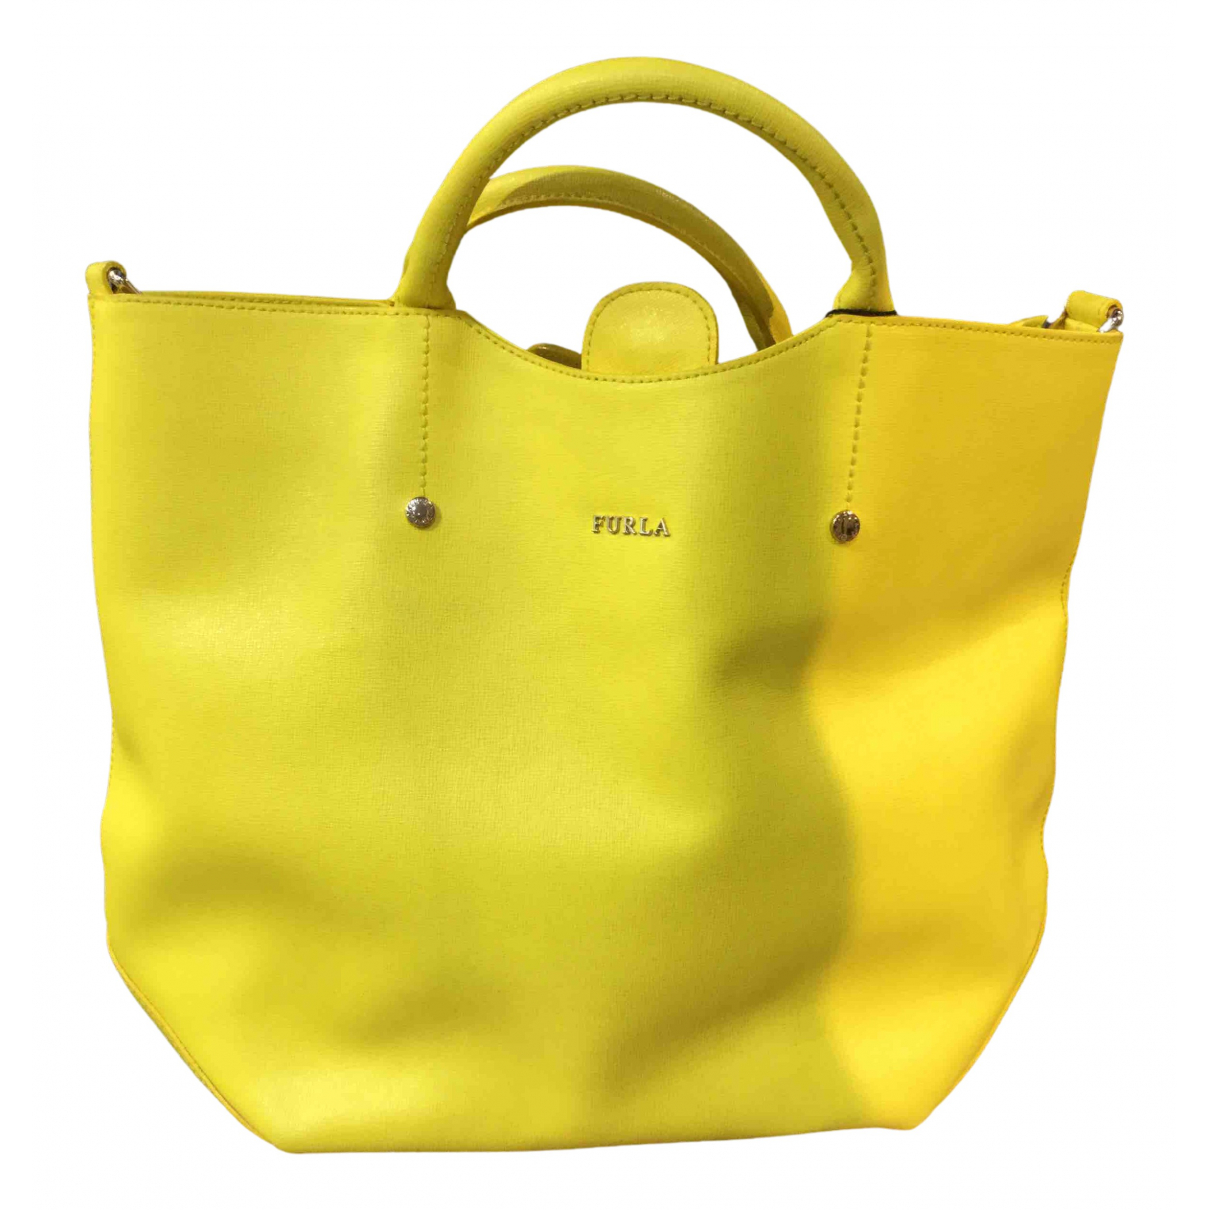 Furla N Yellow Leather handbag for Women N